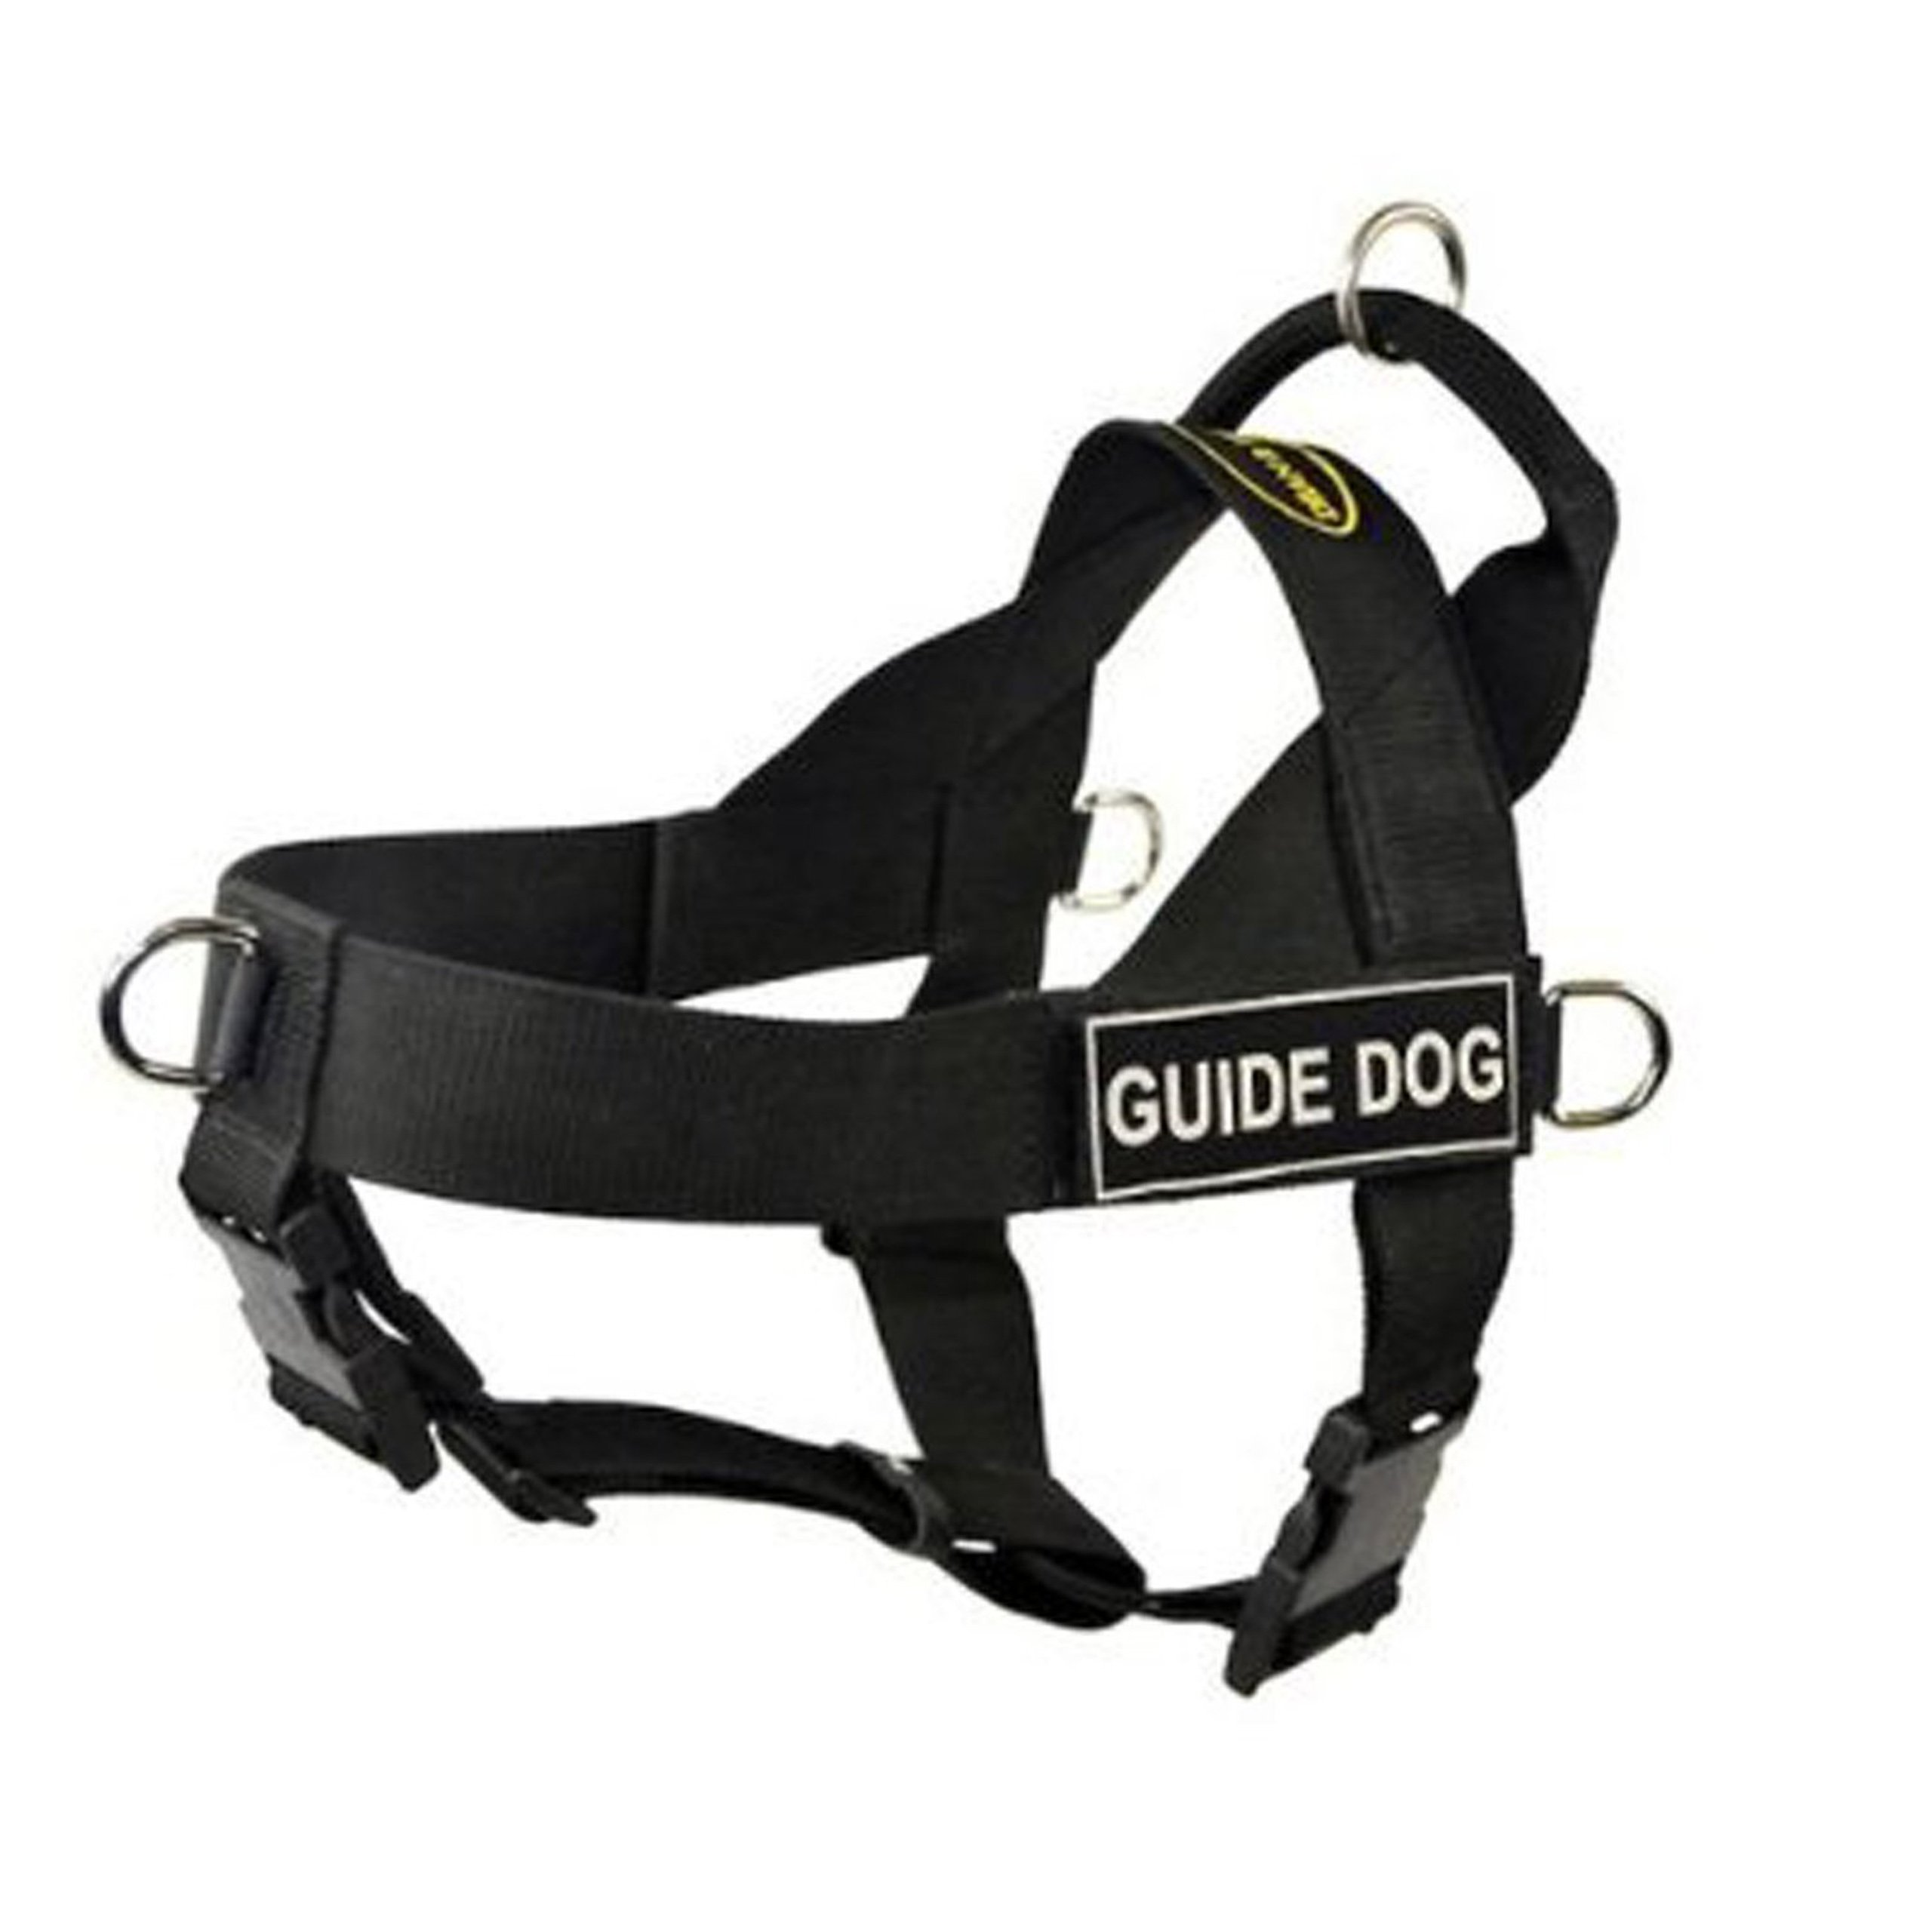 DT Universal No Pull Dog Harness, Guide Dog, Black, X-Small, Fits Girth Size: 21-Inch to 25-Inch